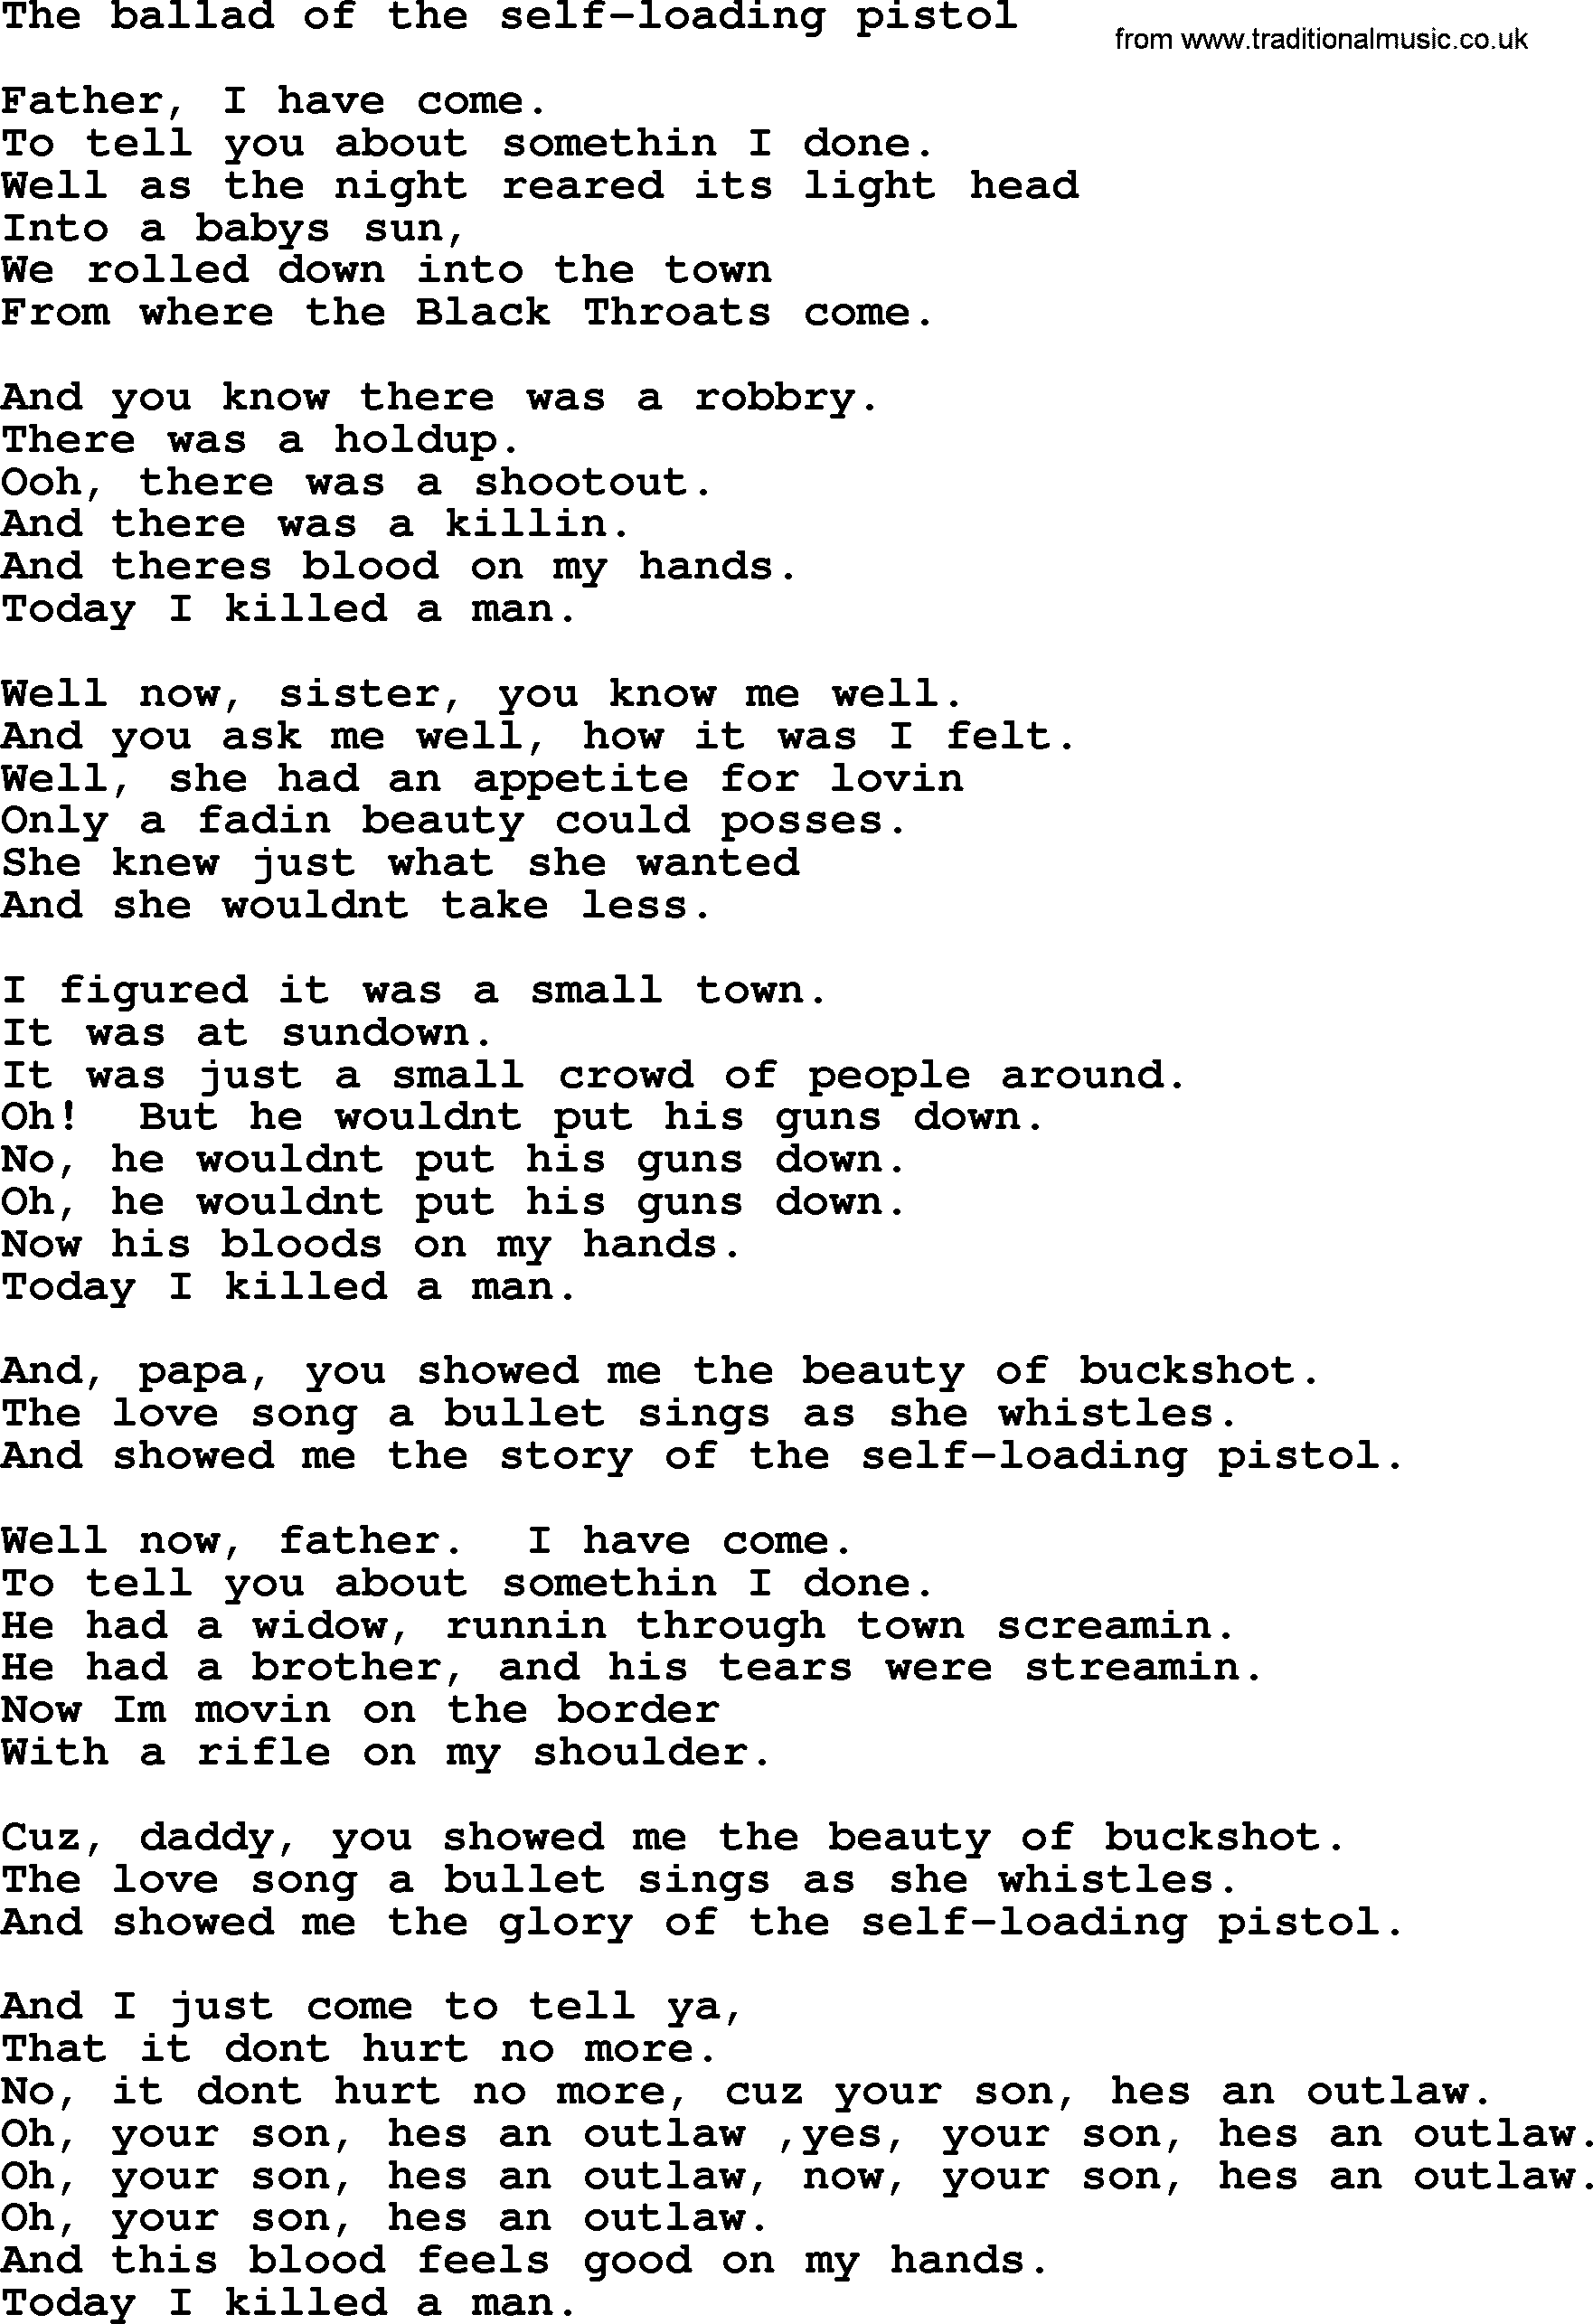 Bruce springsteen song the ballad of the self loading pistol lyrics bruce springsteen song the ballad of the self loading pistol lyrics hexwebz Image collections